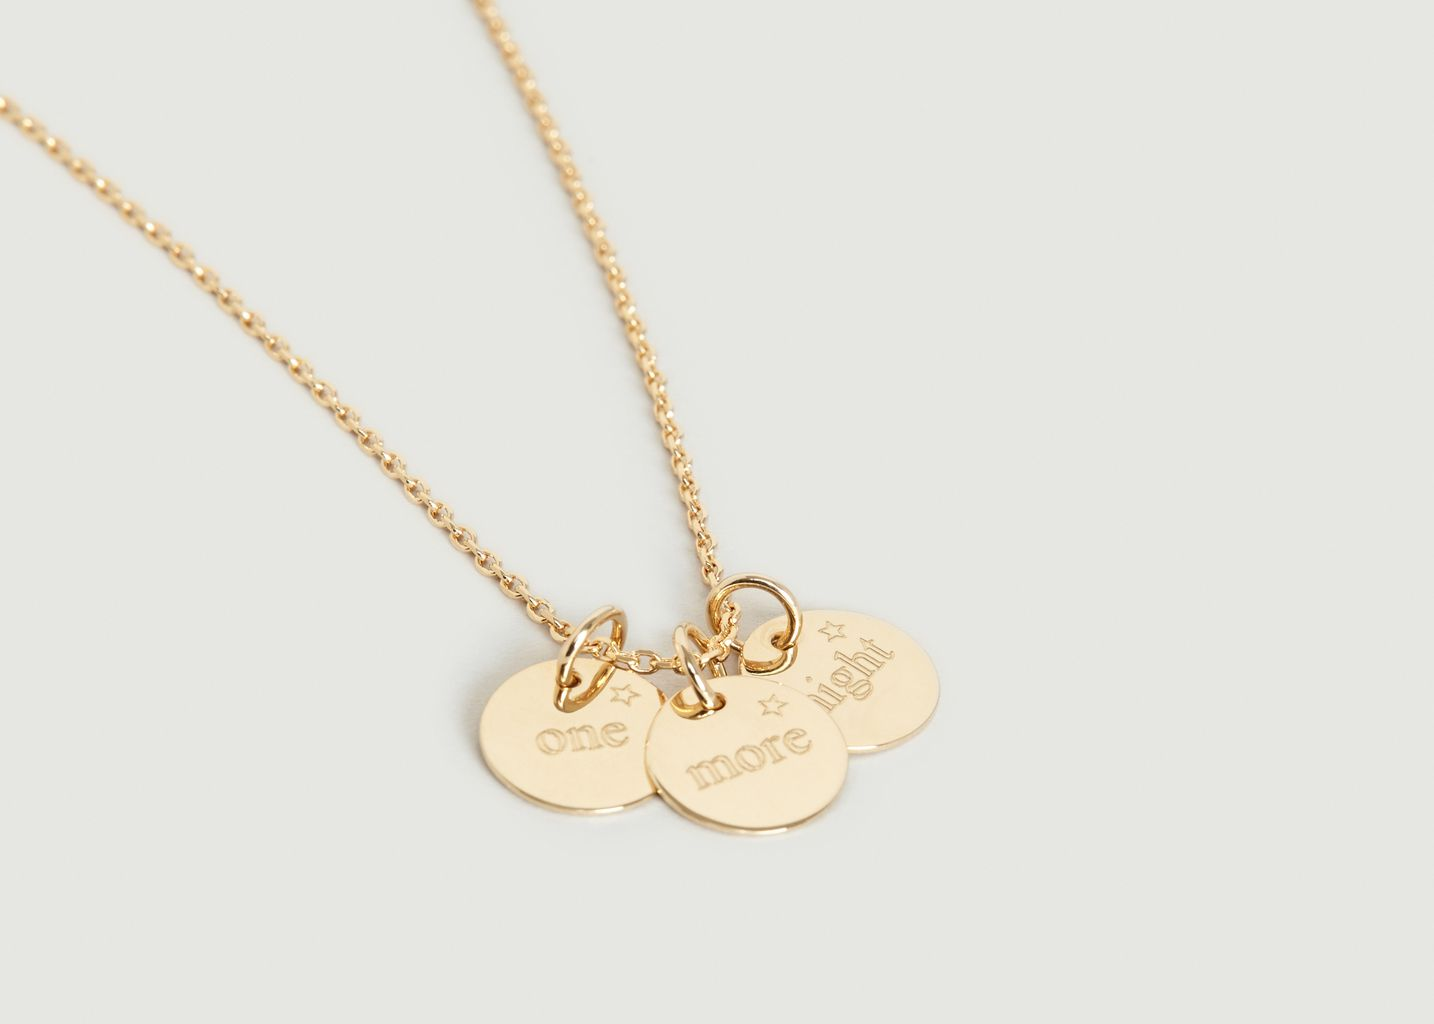 Collier 3 Médailles One / More / Night - Nouvel Amour